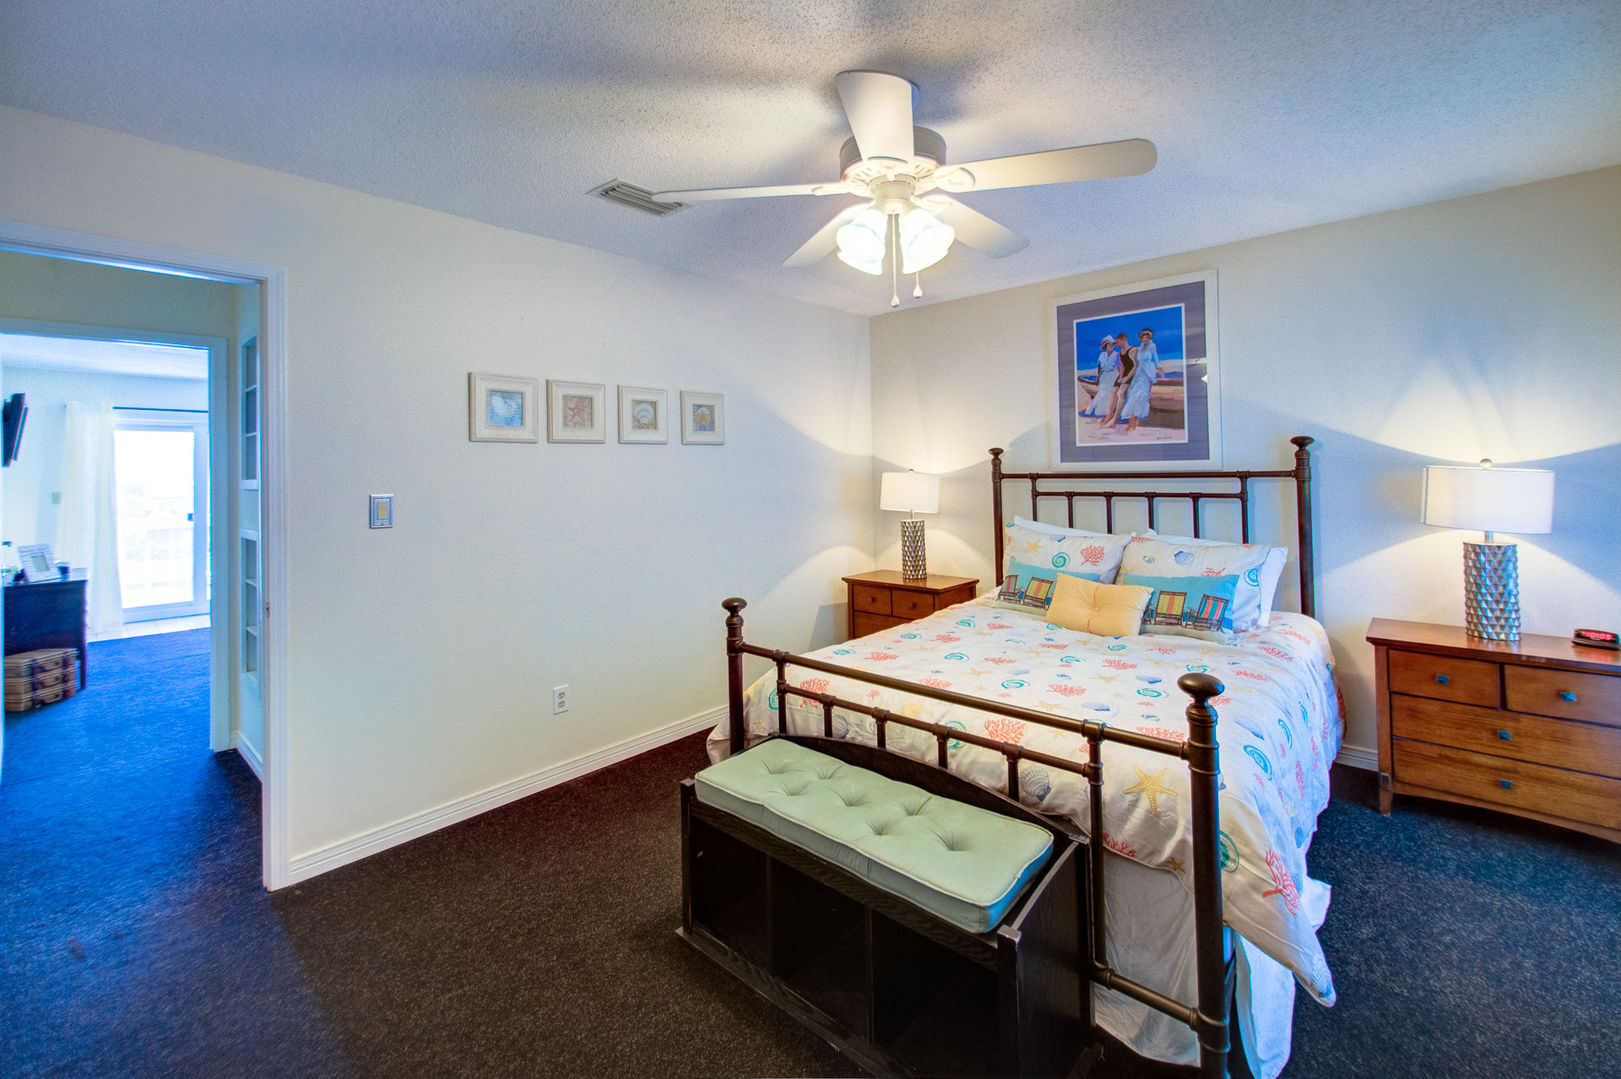 An Image of Spacious Bedroom in Vacation Rental in Pensacola Florida.